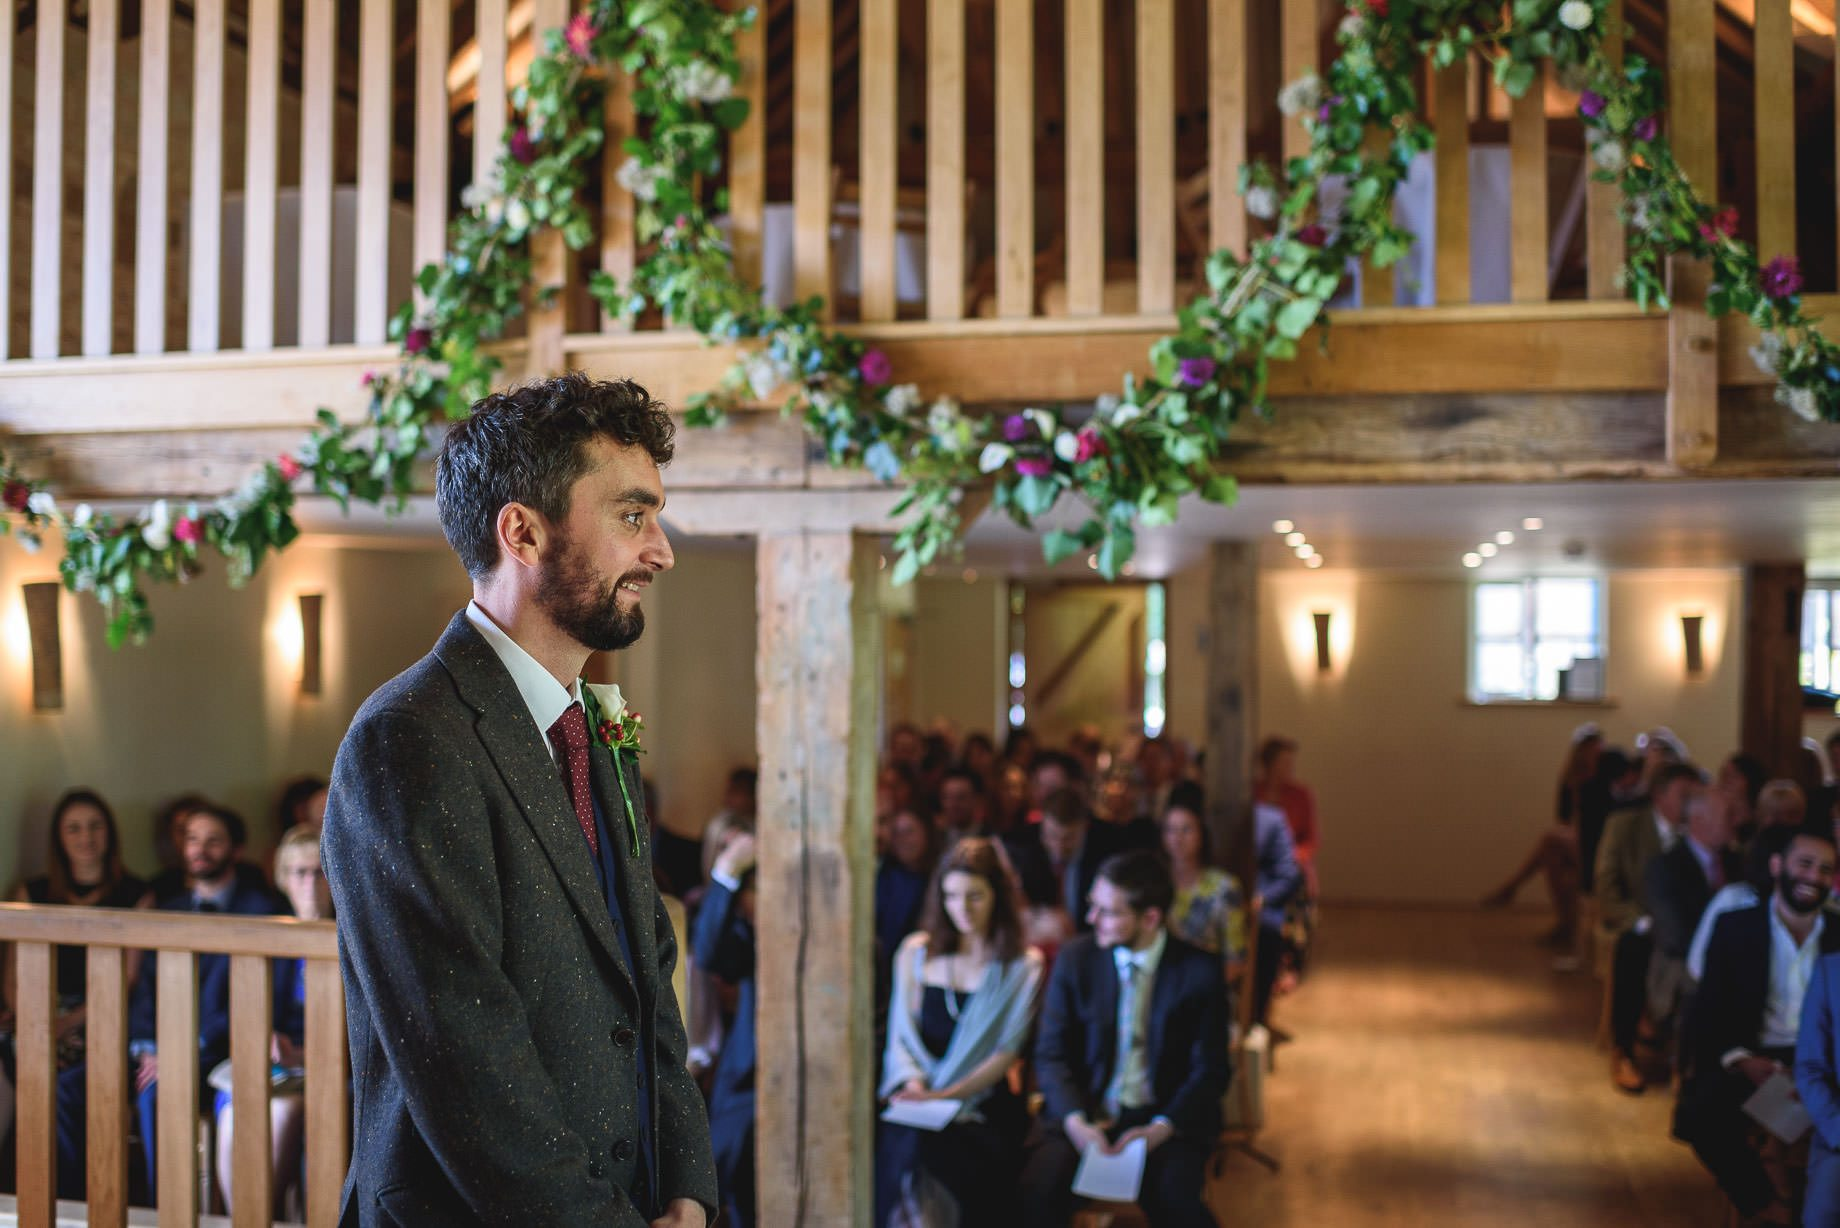 bury-court-barn-wedding-photography-guy-collier-photography-nadia-tom-51-of-184